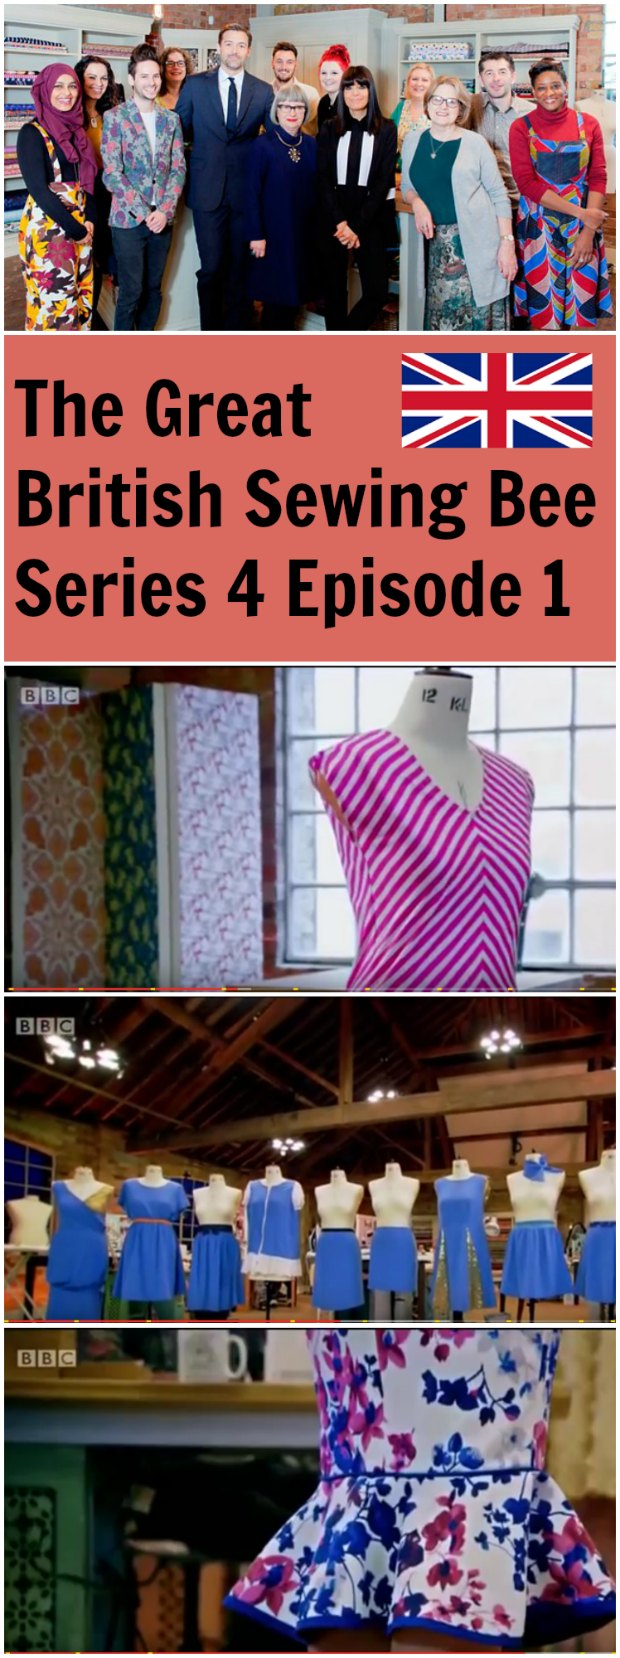 I missed this episode so I was so excited to see it available in full here. The BEST sewing show on TV, and I love all those British accents.